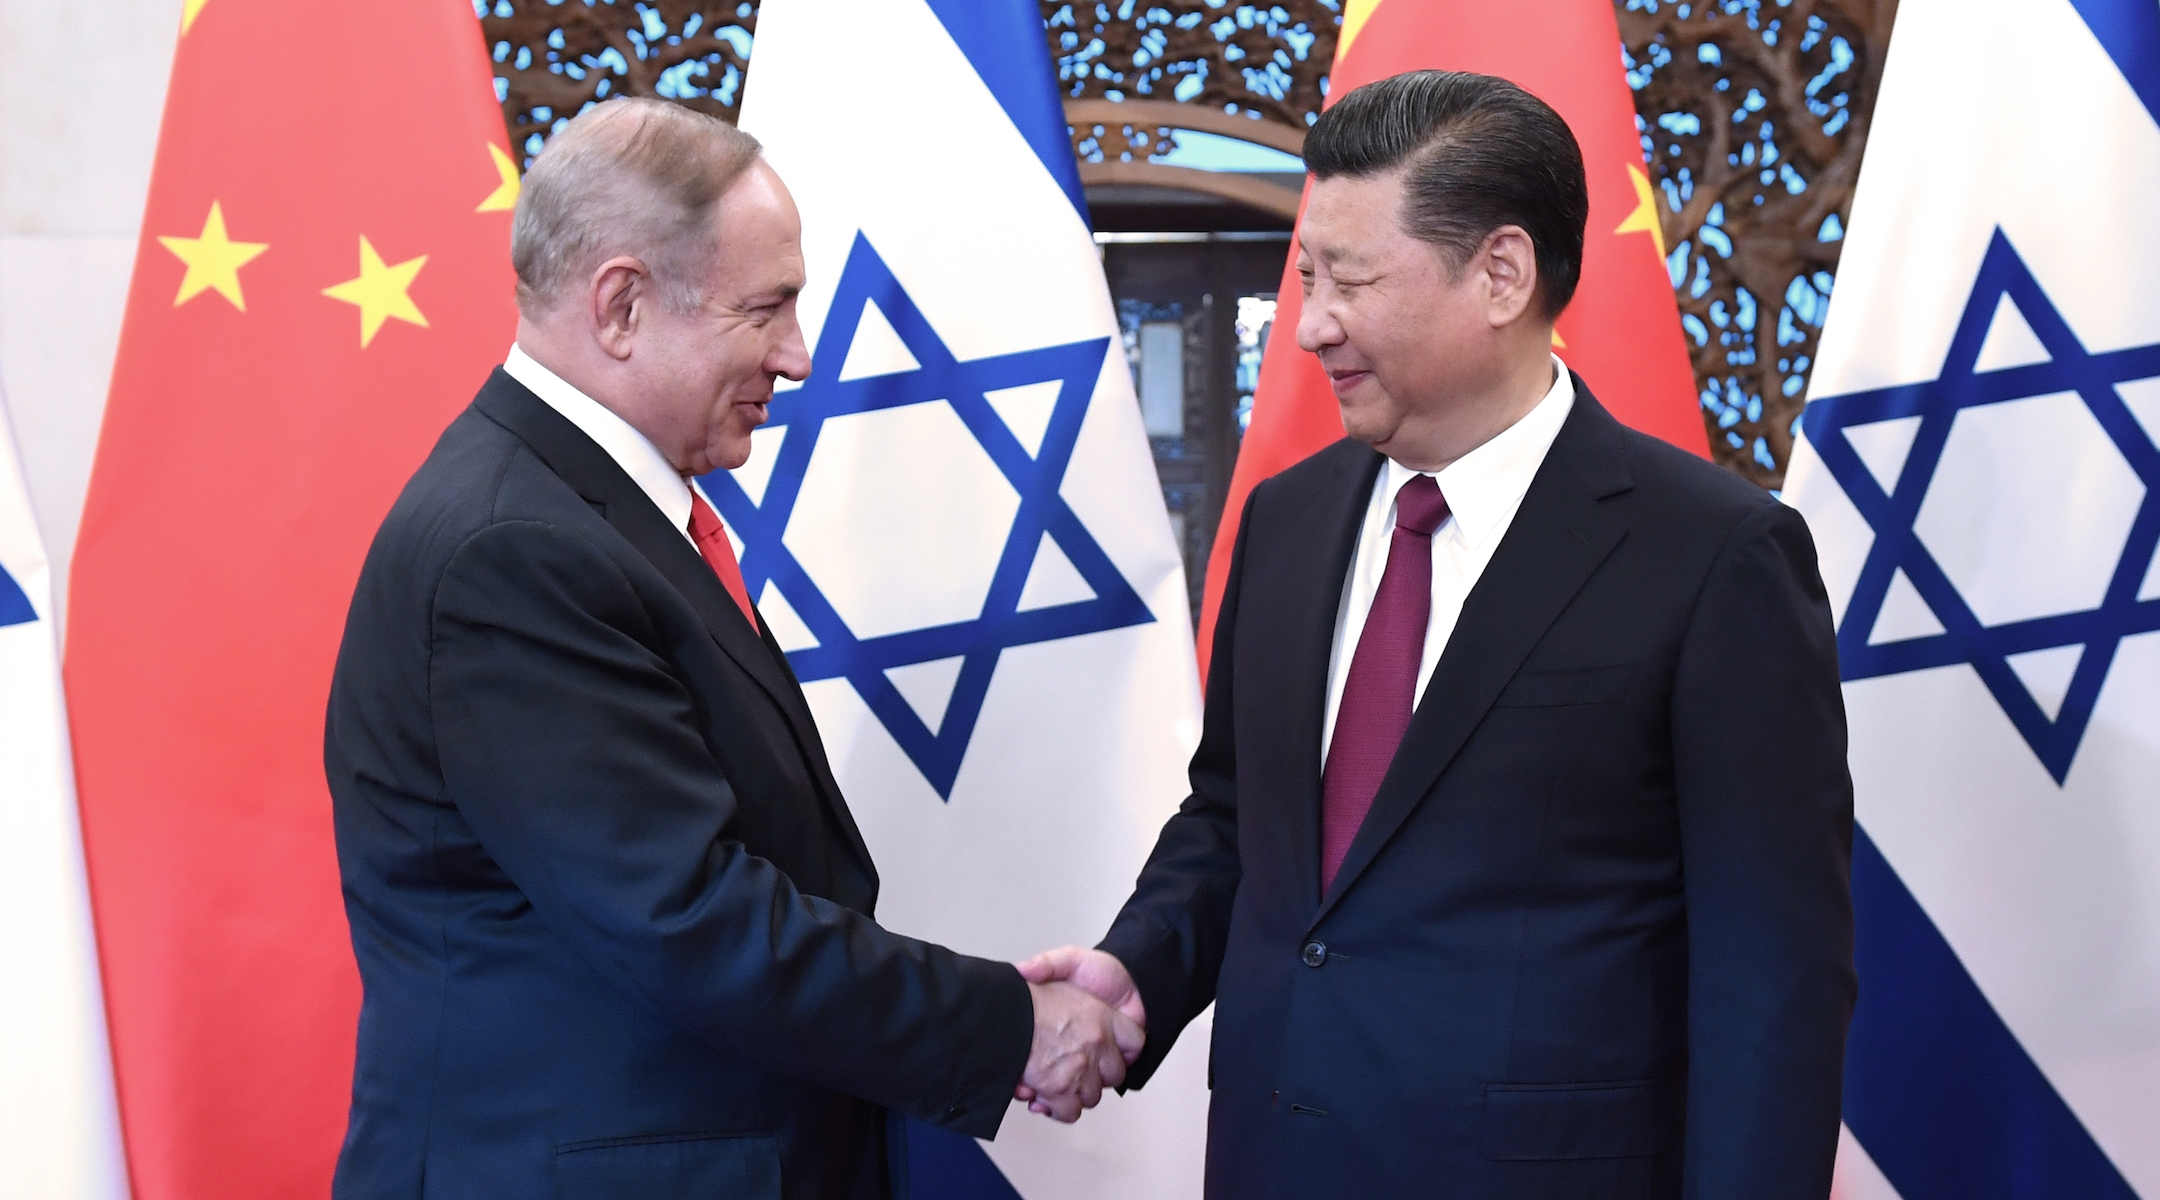 Breaking China: A rupture looms between Israel and the United States